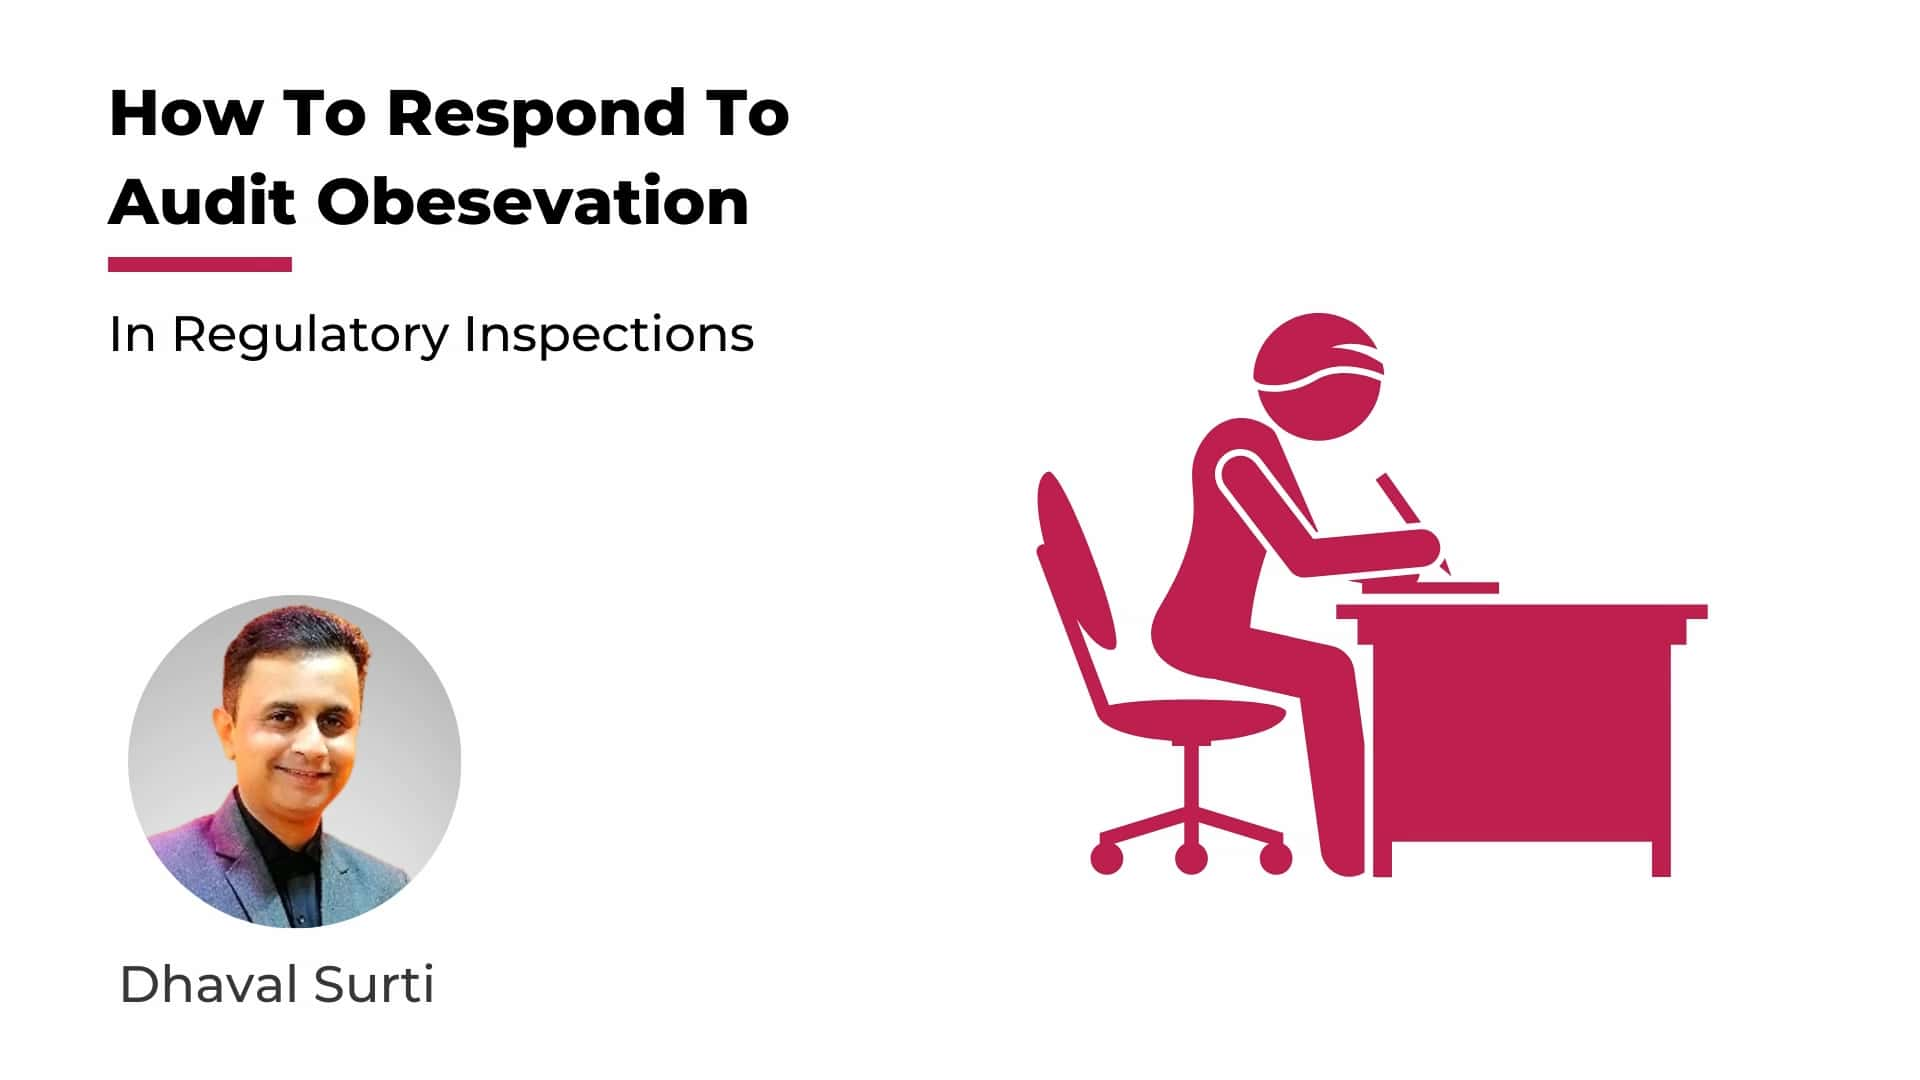 How to Respond to Audit Observation